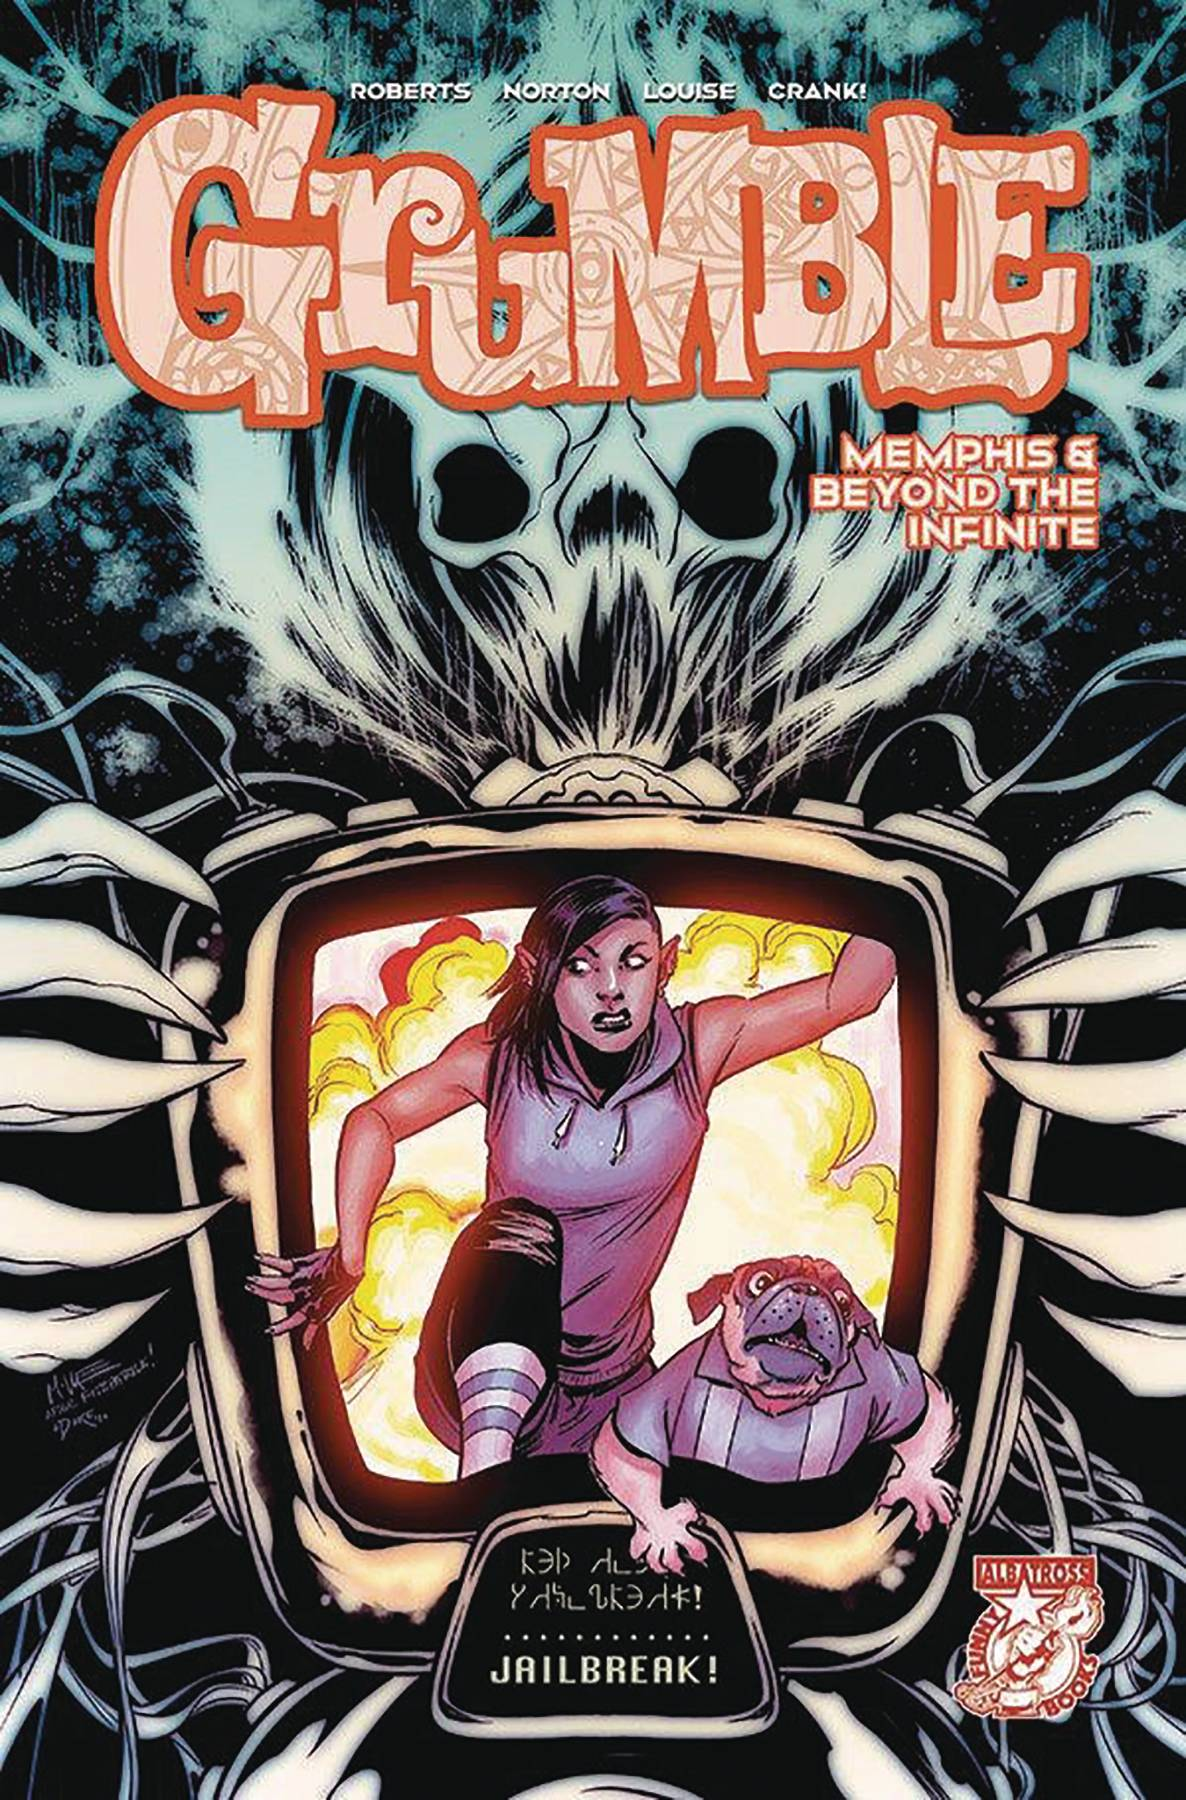 GRUMBLE MEMPHIS & BEYOND THE INFINITE #4 (OF 5) (RES)